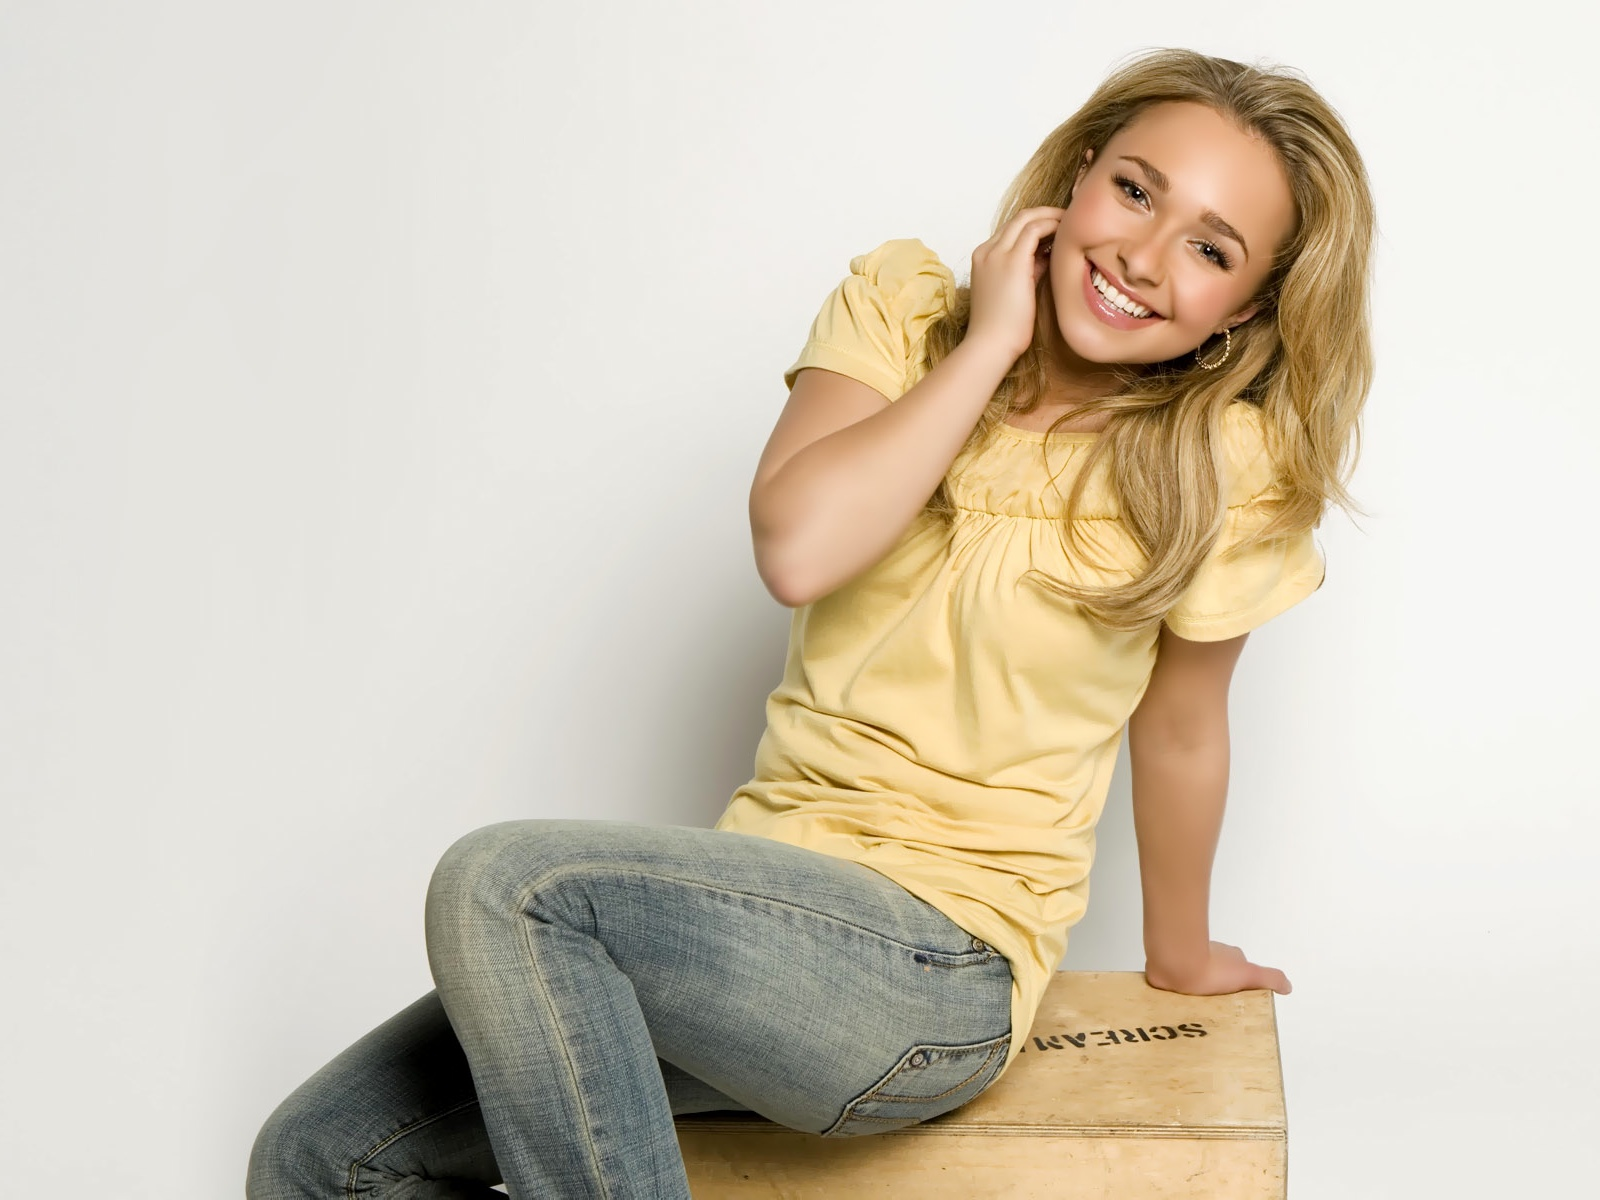 Hayden_panettiere_hot_wallpaper+(1)jpeg